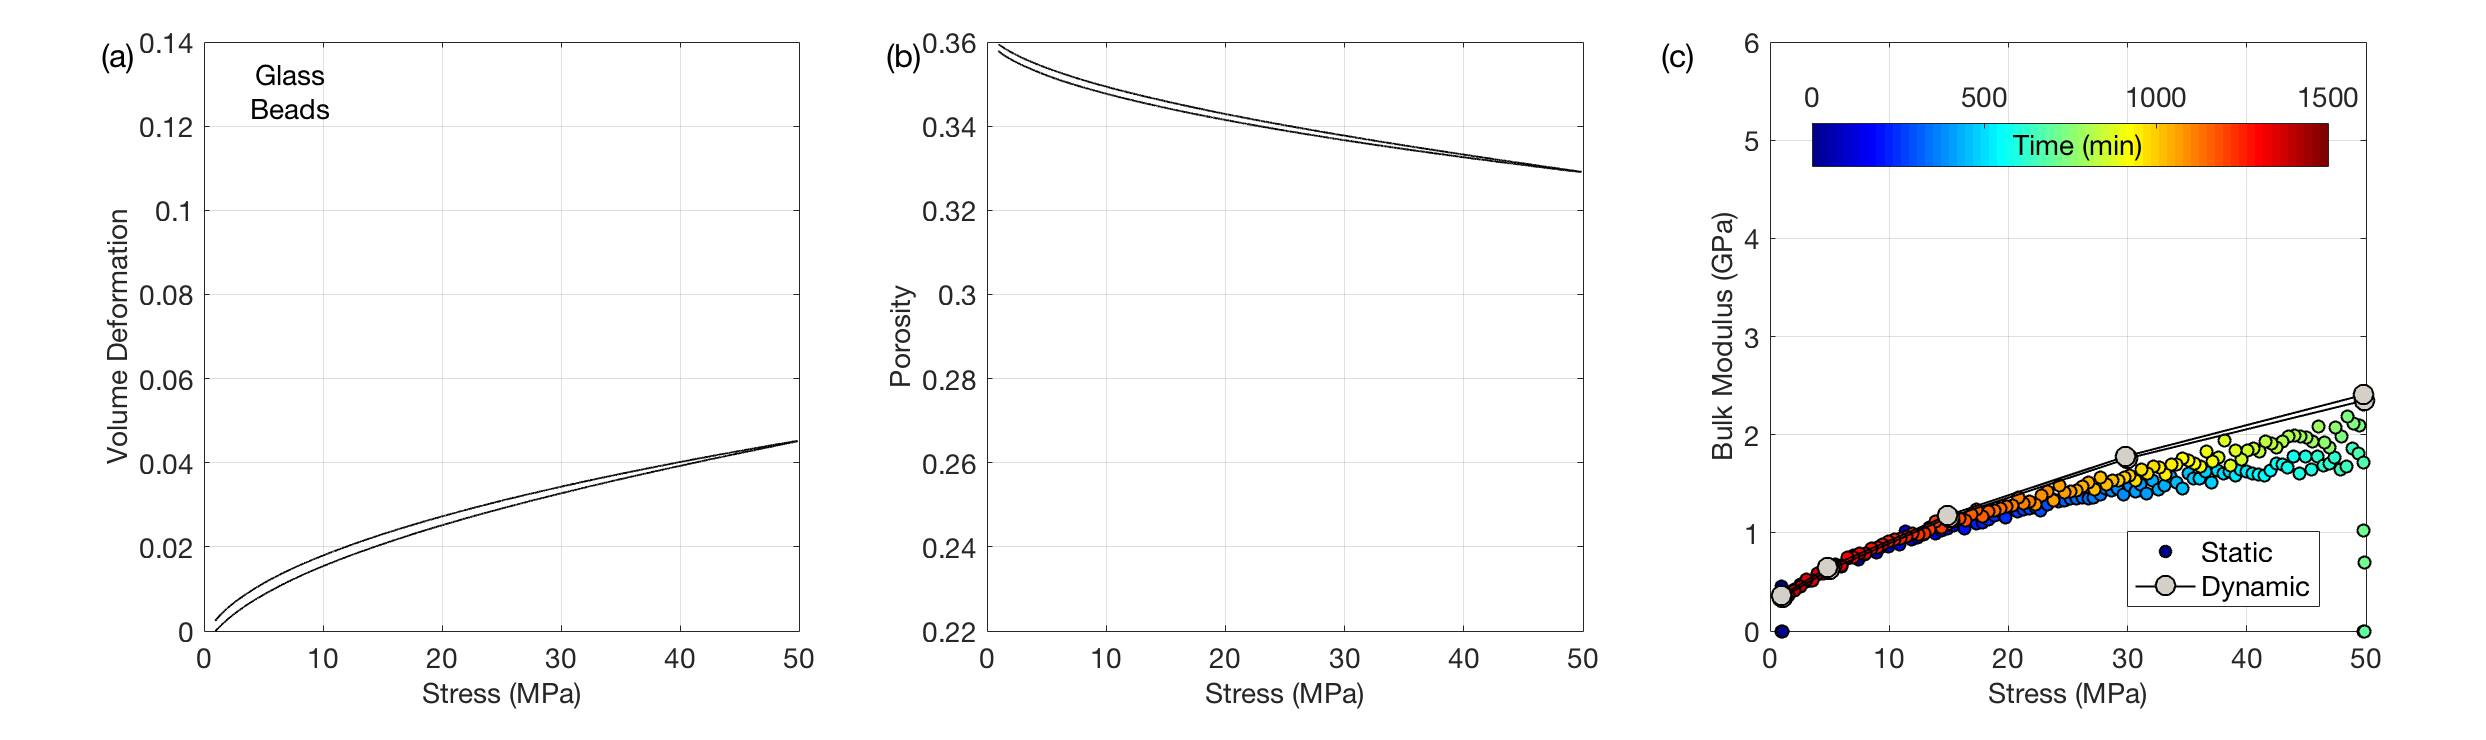 Velocity versus stress for the crest, limb, and base samples, color-coded by porosity. Circles are for dune crest; squares are for dune limb; and diamonds are for dune base samples. The curves are from theoretical contact-theory models.